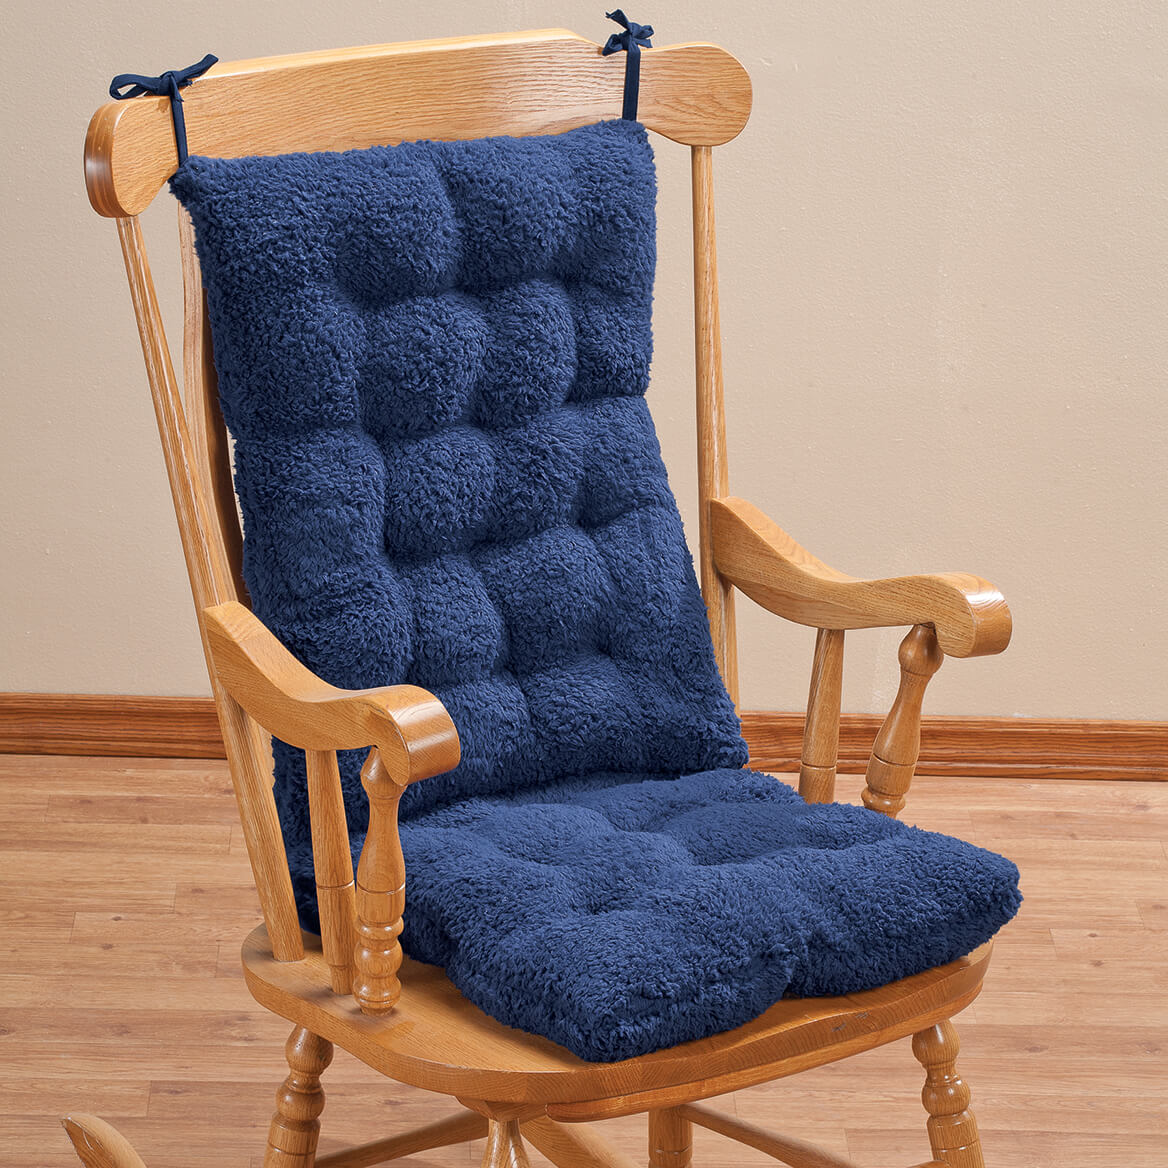 Superb Sherpa Rocking Chair Cushion Set By Oakridge Uwap Interior Chair Design Uwaporg